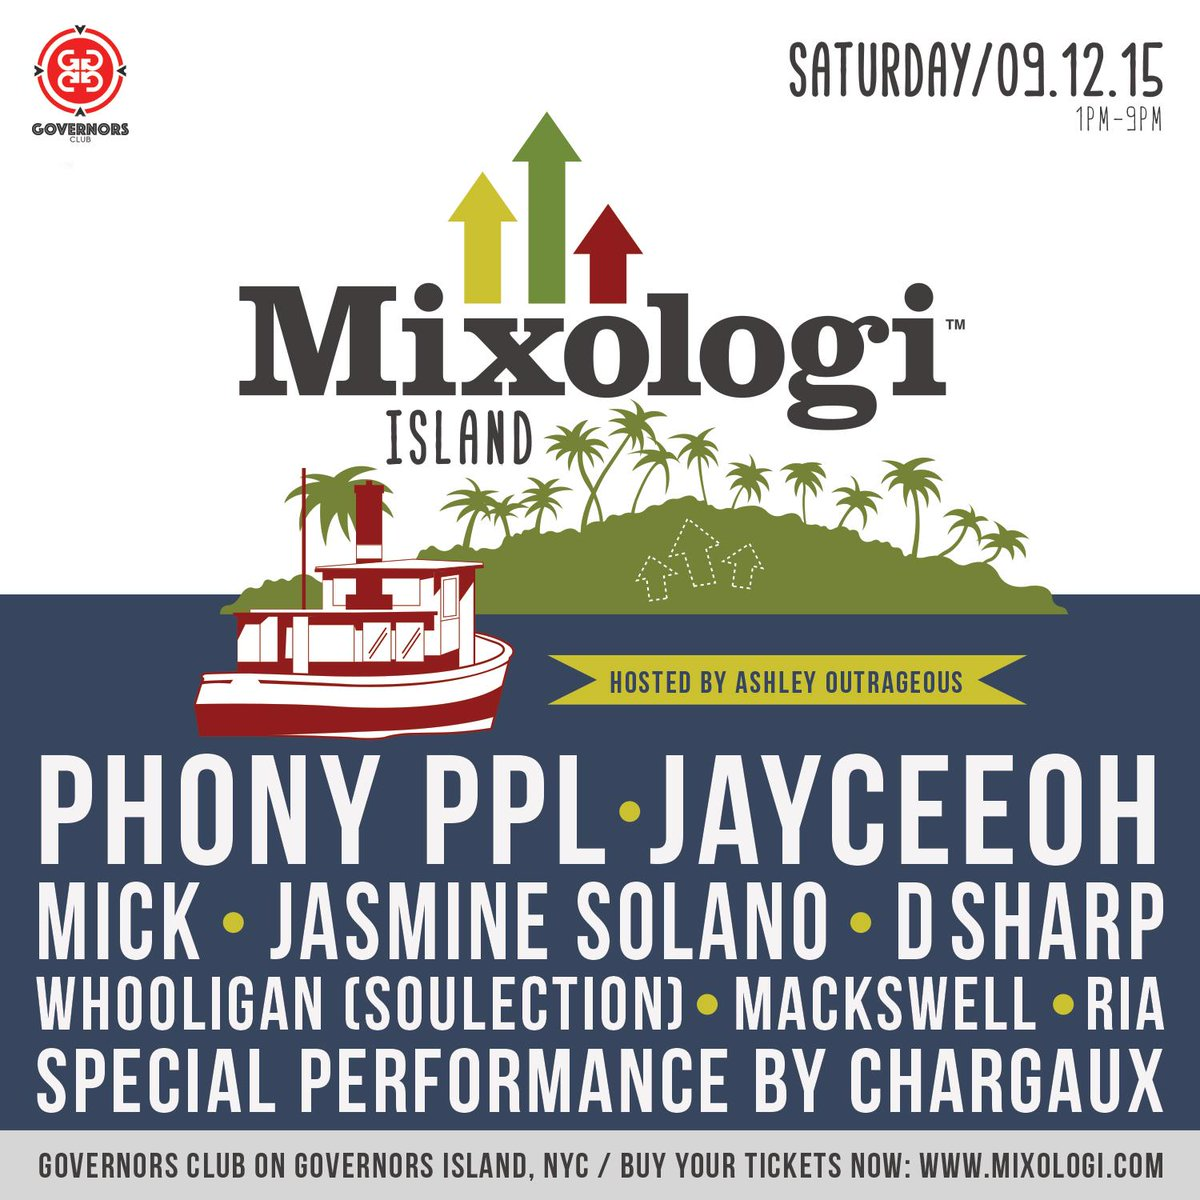 NYC this Sat! @Mixologi mini fest on Gov Island is happening! Tix here: http://t.co/JbeSzF7ZkZ // Line up is mad: http://t.co/ZpbPT4EyiP